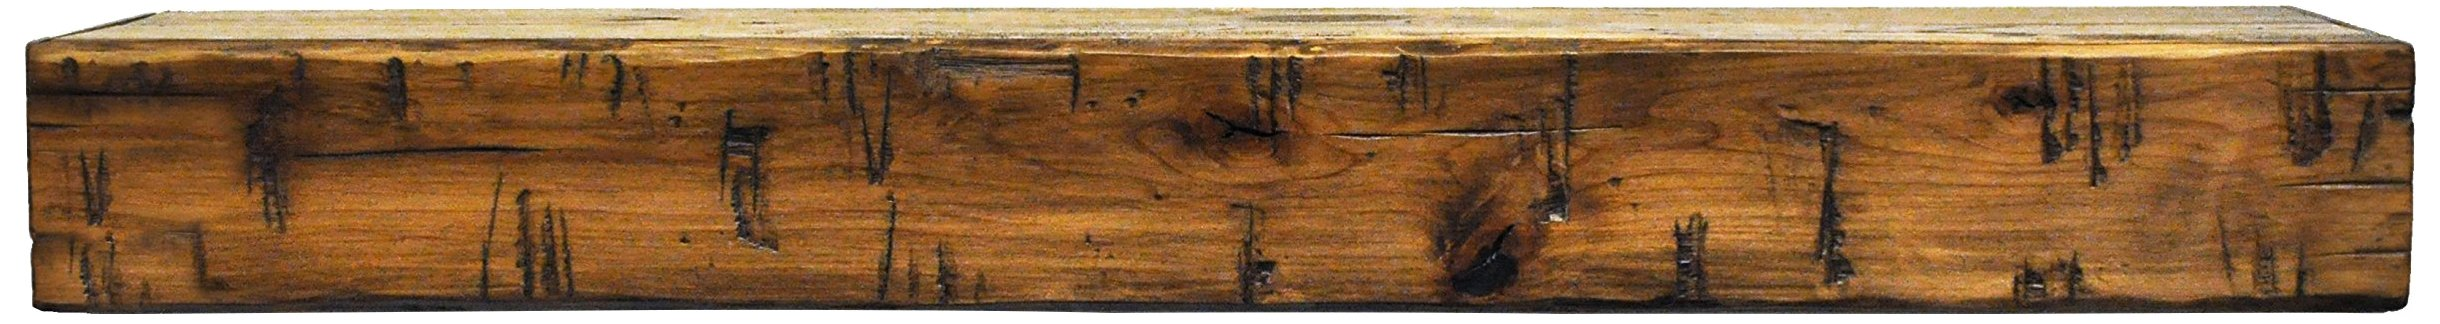 Dogberry Collections Rustic Mantel Shelf, Aged Oak, 72''